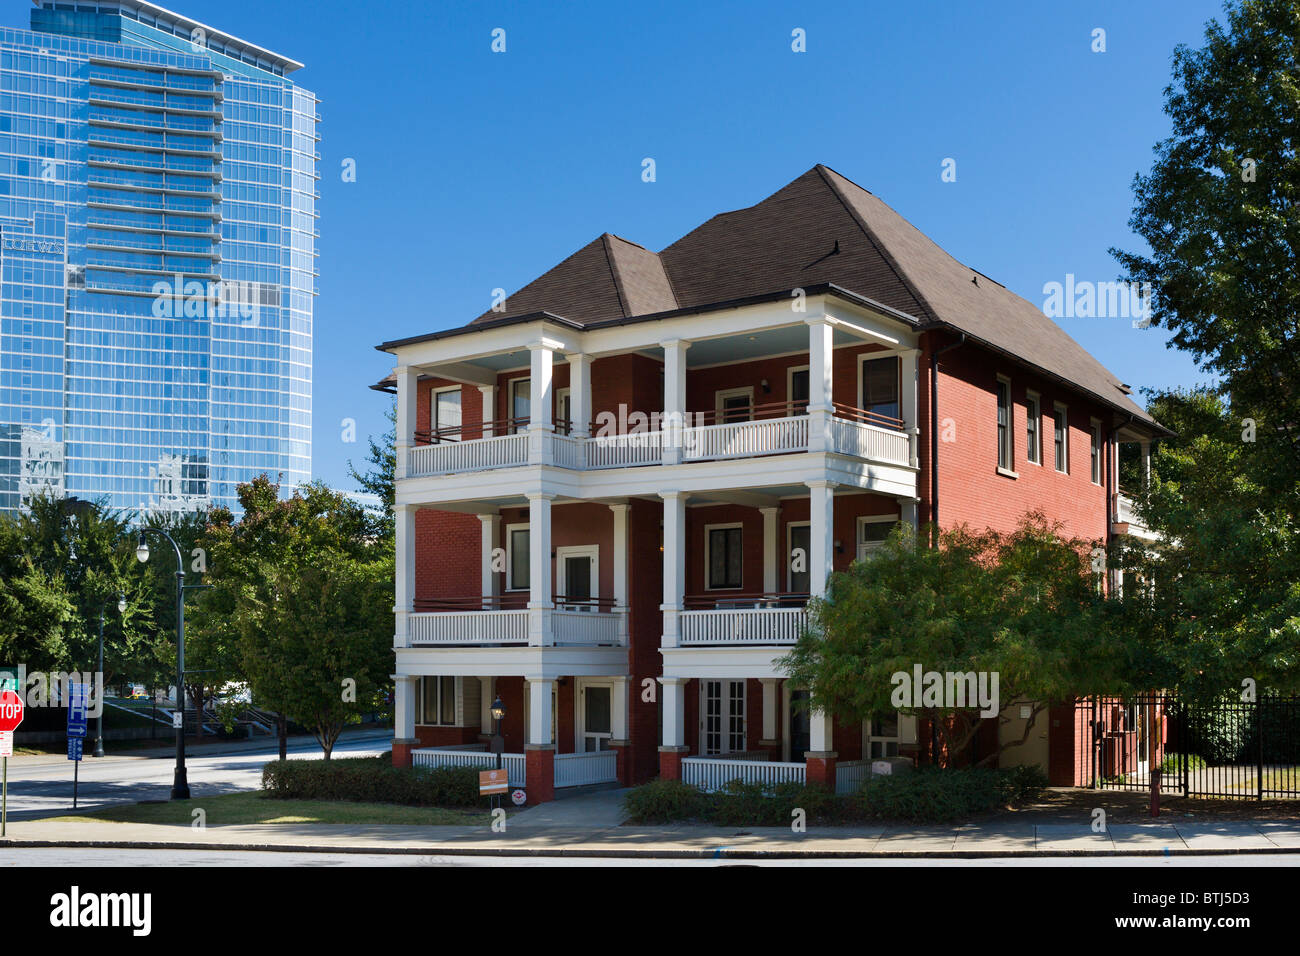 House of Margaret Mitchell (author of 'Gone with the Wind'), 10th Street, Midtown Atlanta, Georgia, USA - Stock Image